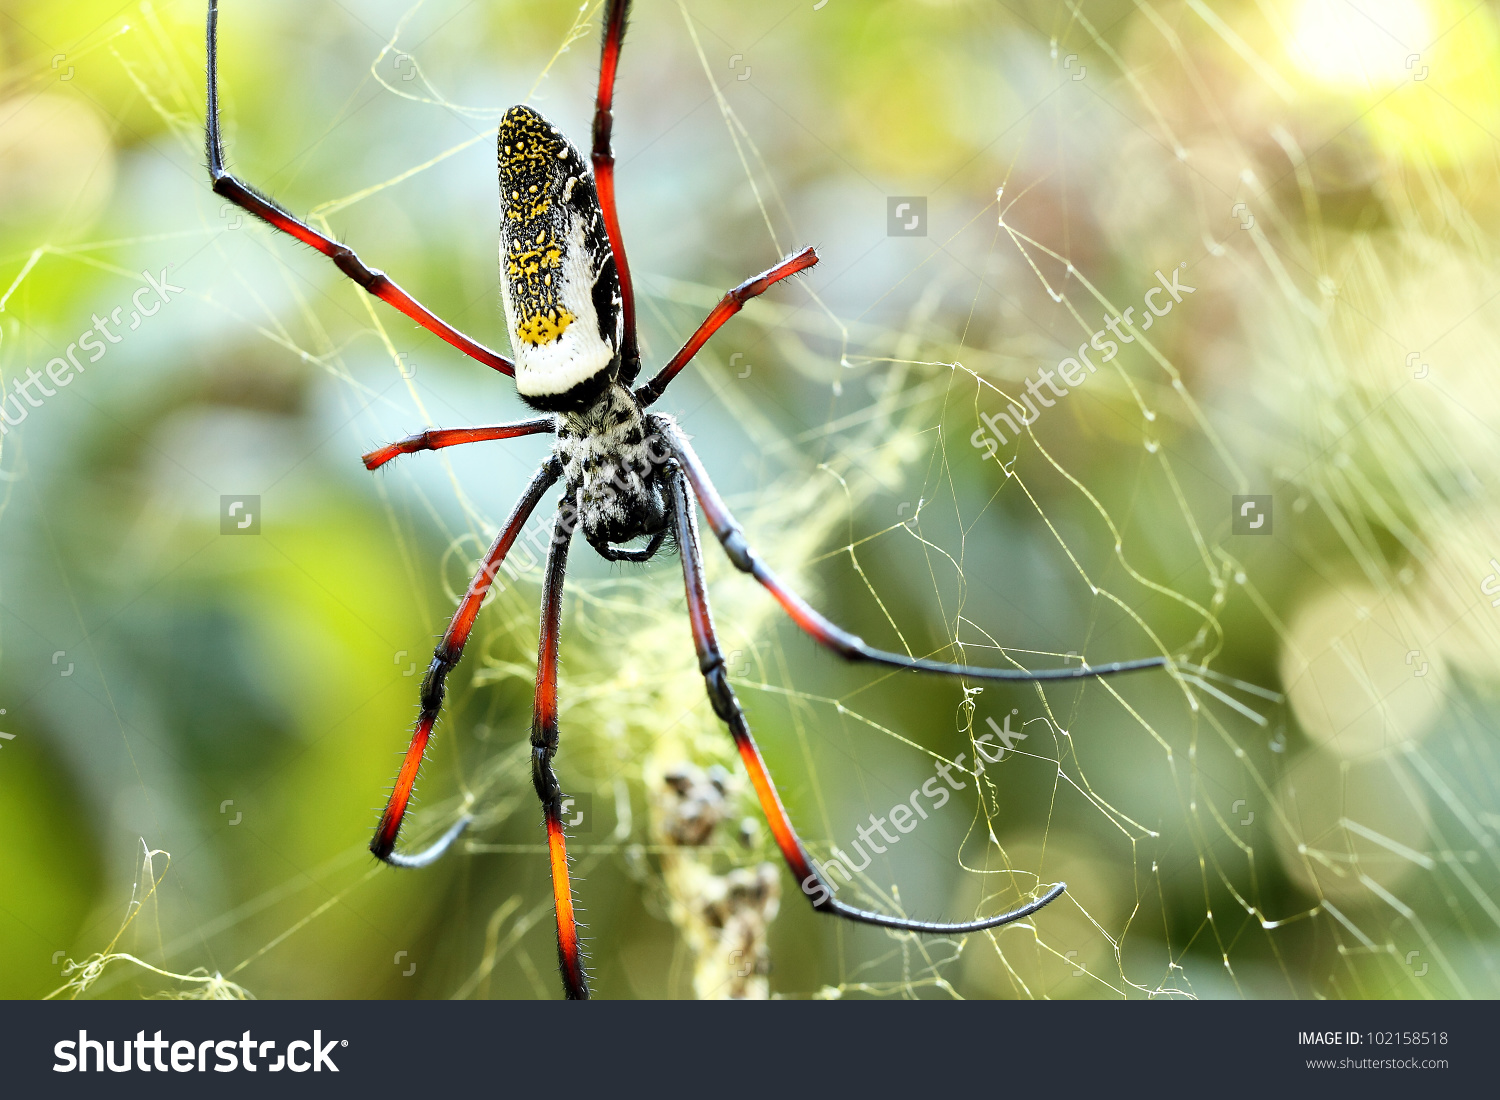 Golden Silk Orb-weaver Spider clipart #7, Download drawings